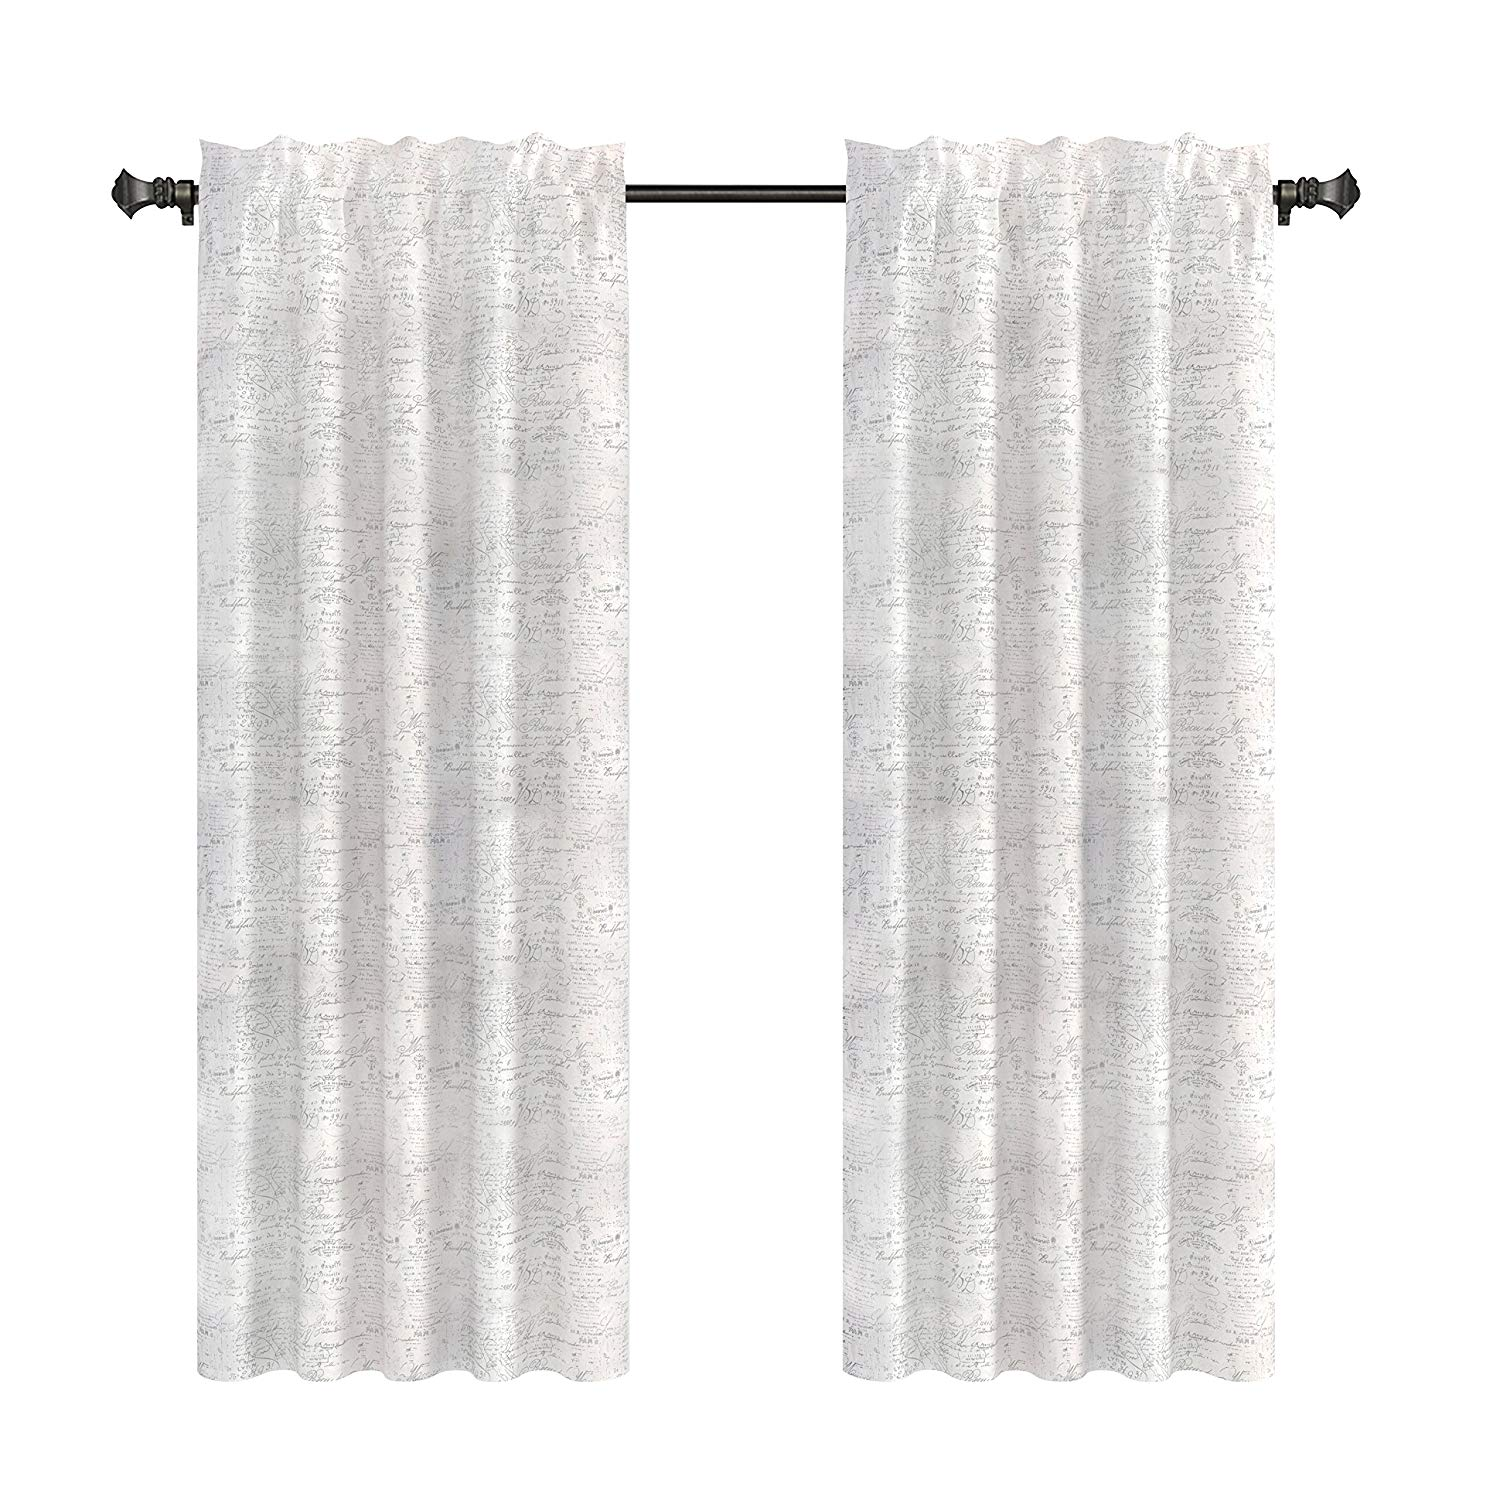 Urbanest French Scripted Linen Designer Drapery Curtain Panels(two Panels), Cream, Unlined